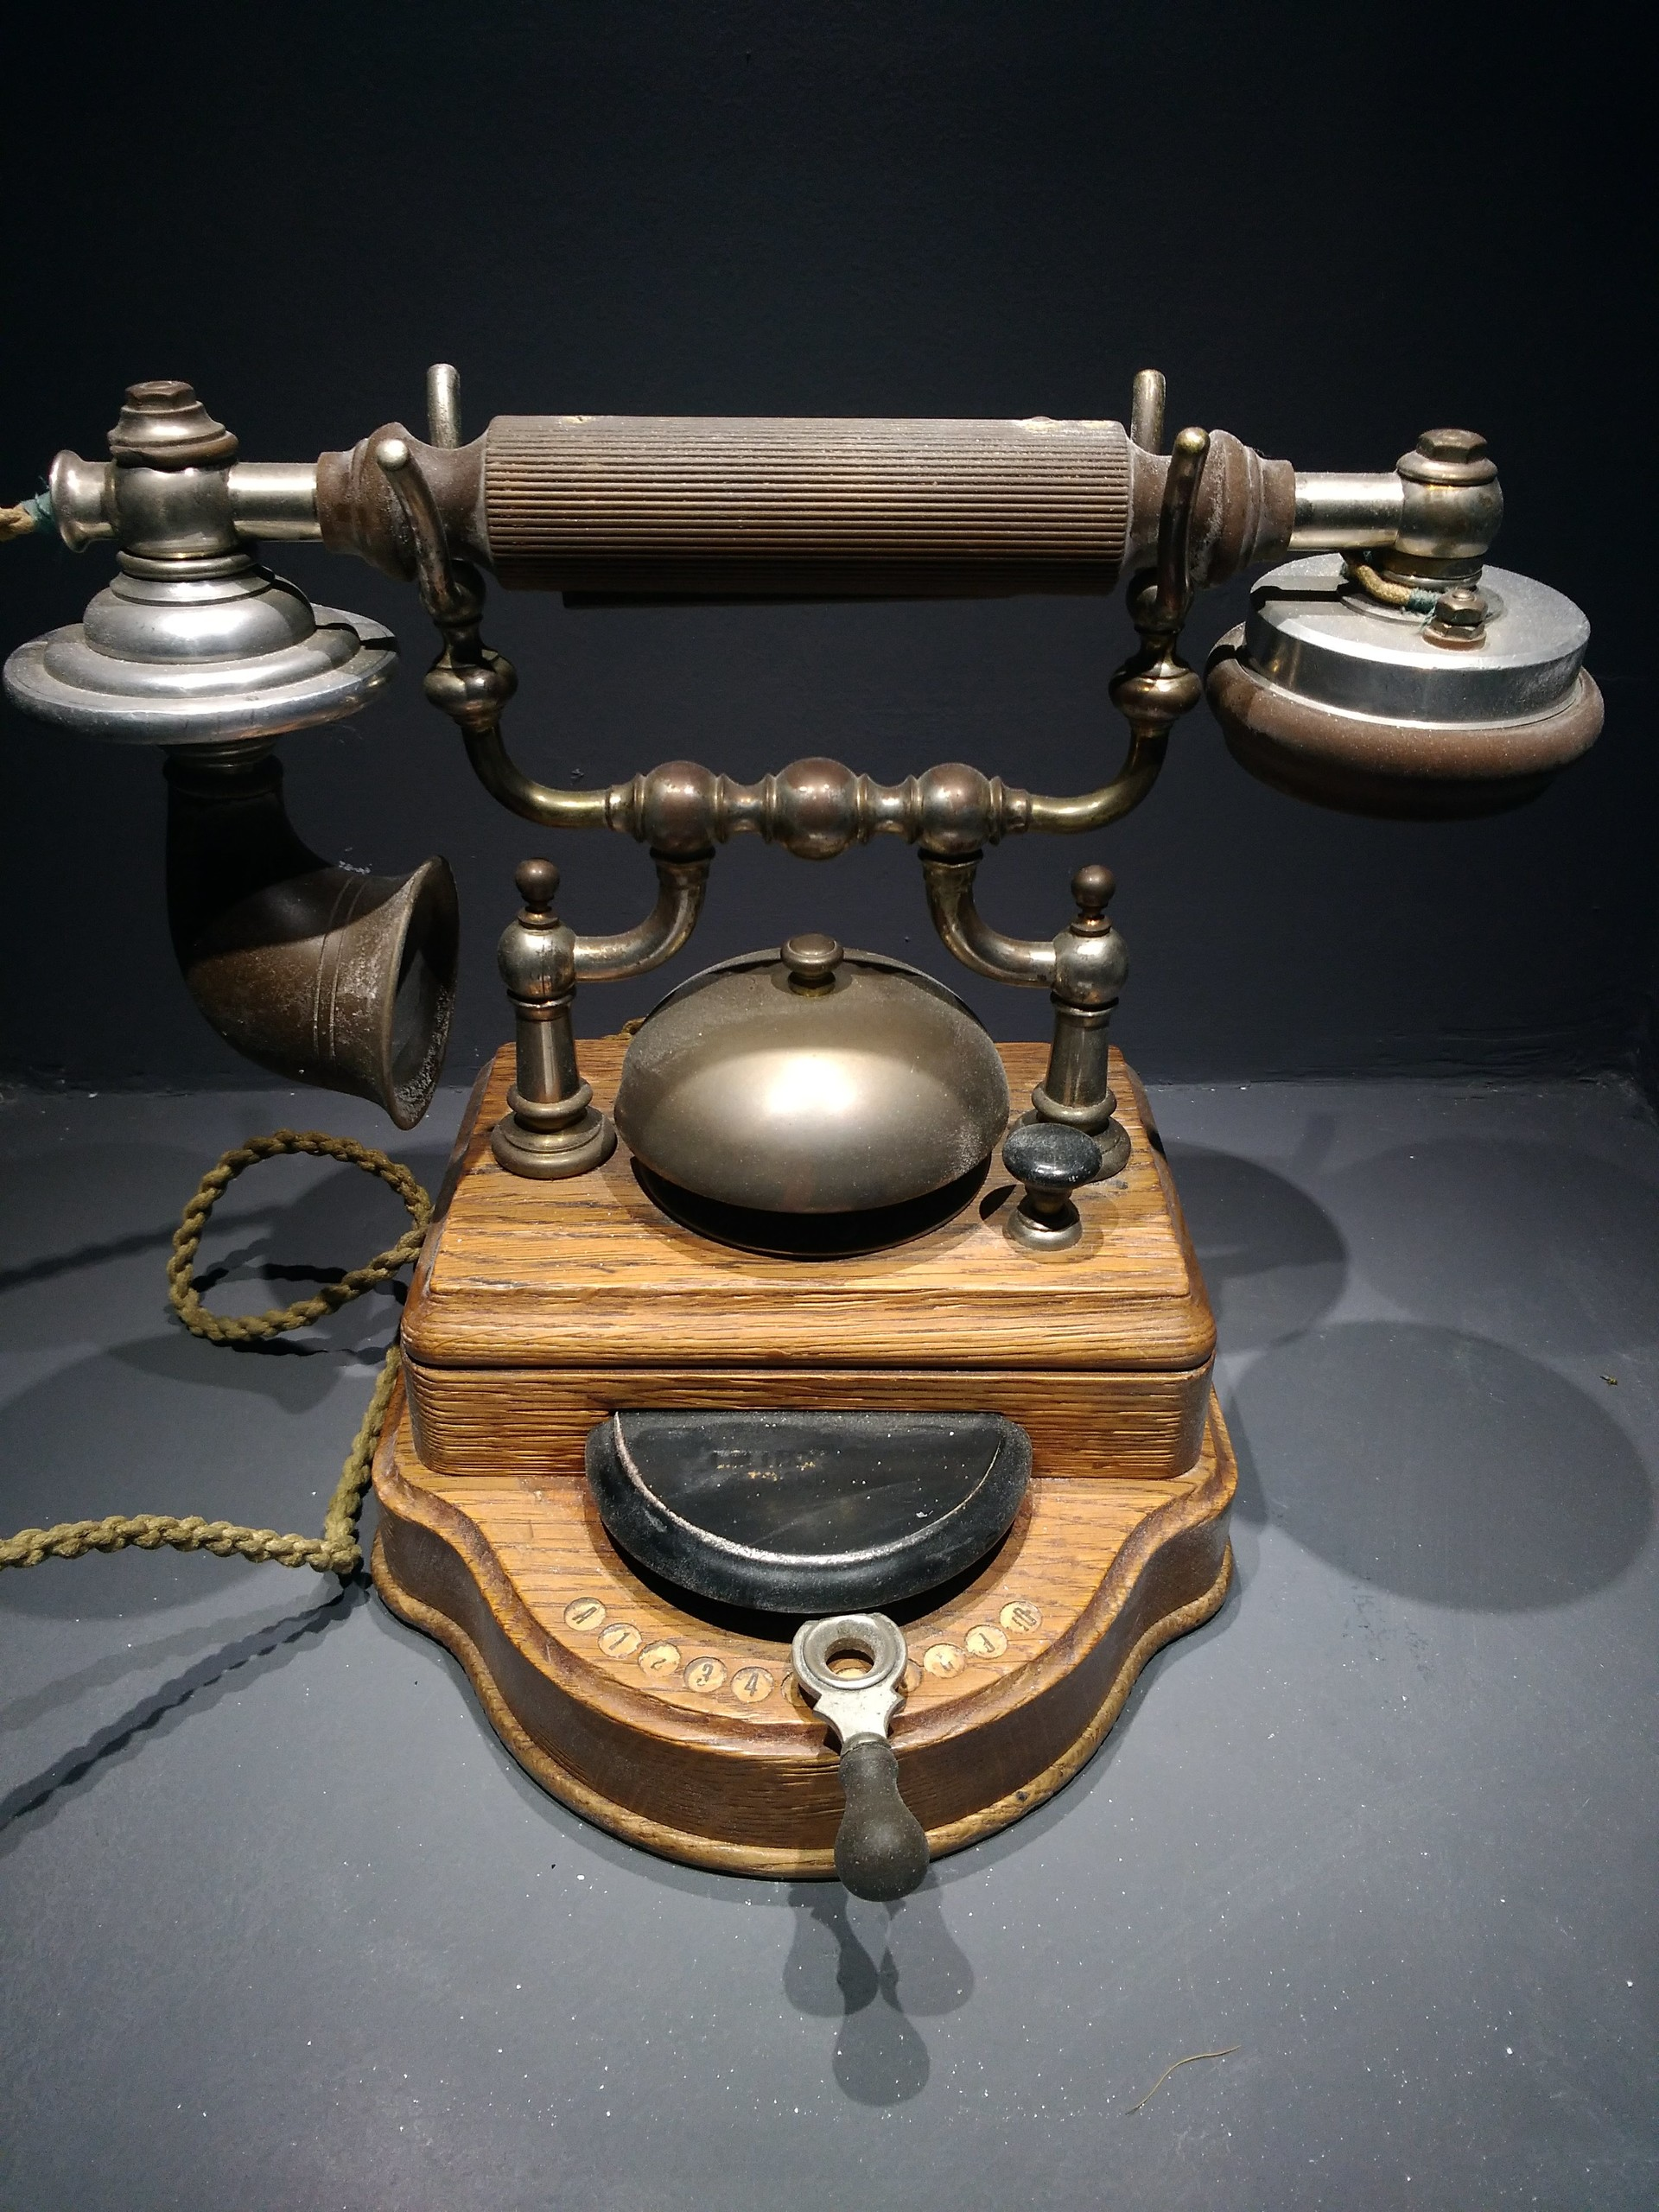 Gil RIDEL - Old Telephone of year 1840